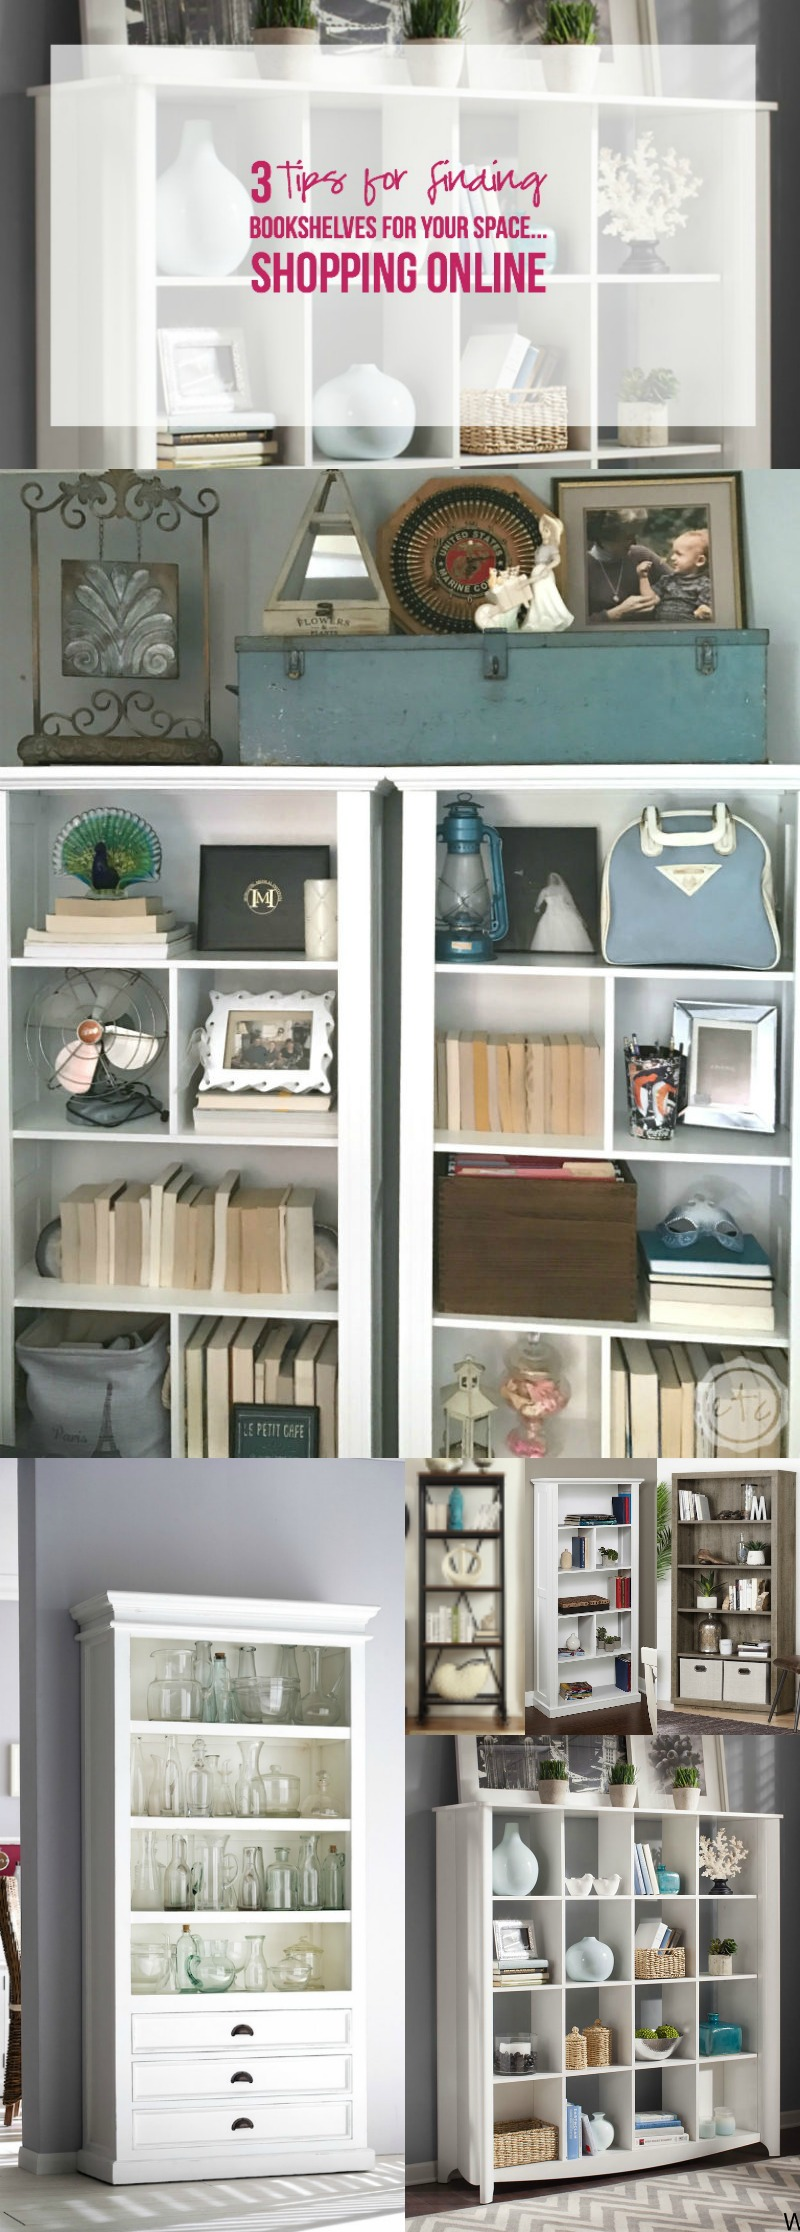 3 Tips for Finding Bookshelves for your Space... Shopping Online